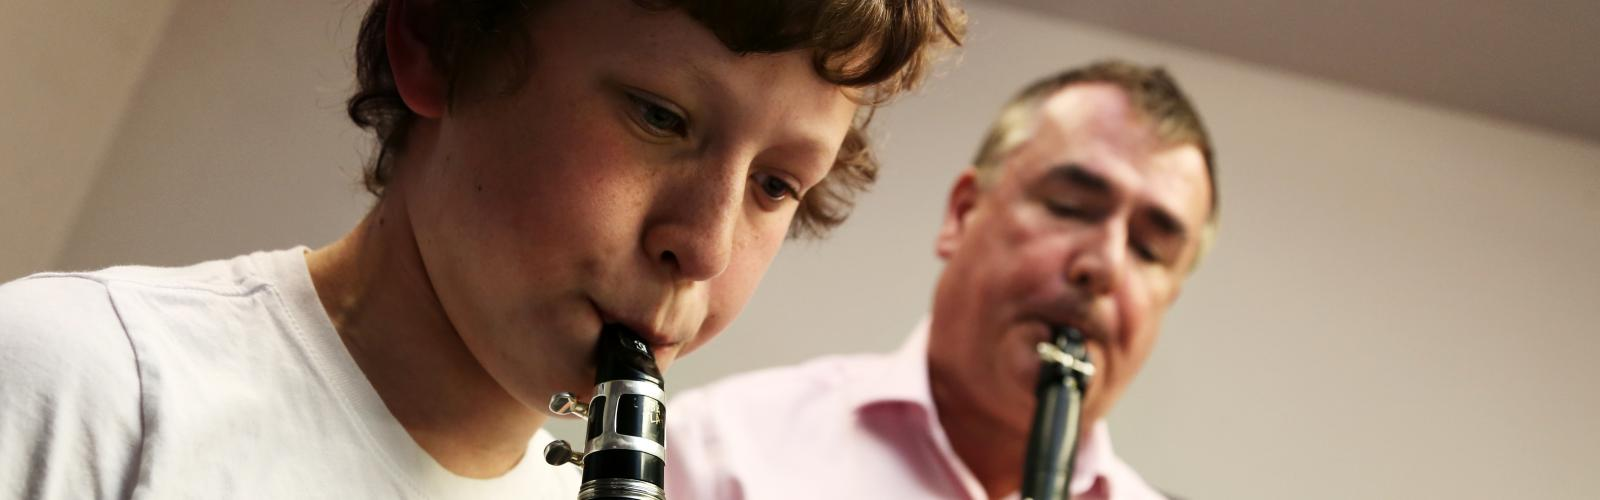 Clarinet student and teacher, RIAM